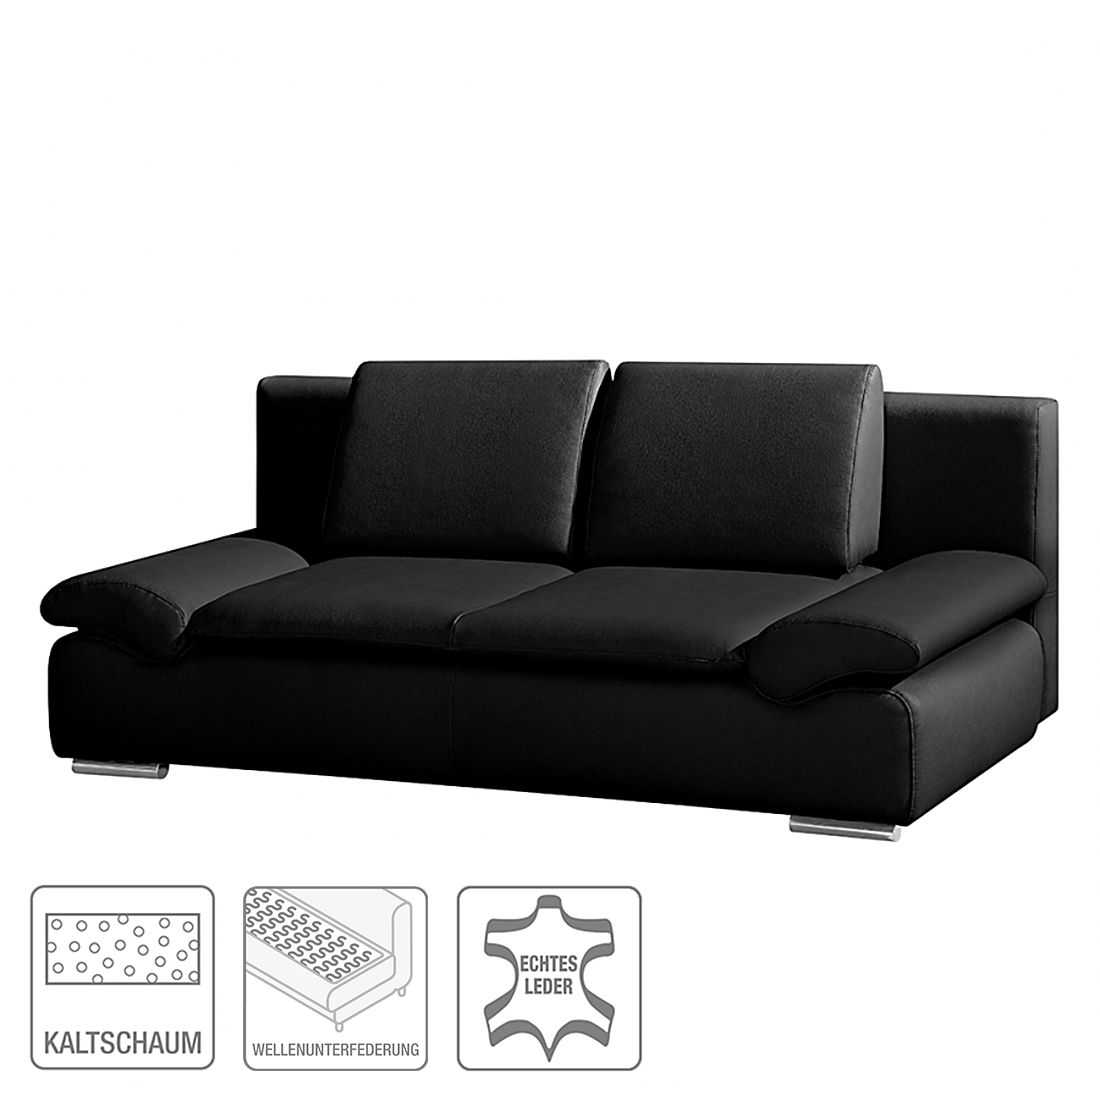 m bel schlafsofa norris echtleder schwarz modoform billigfraktion der schn ppchen blog. Black Bedroom Furniture Sets. Home Design Ideas